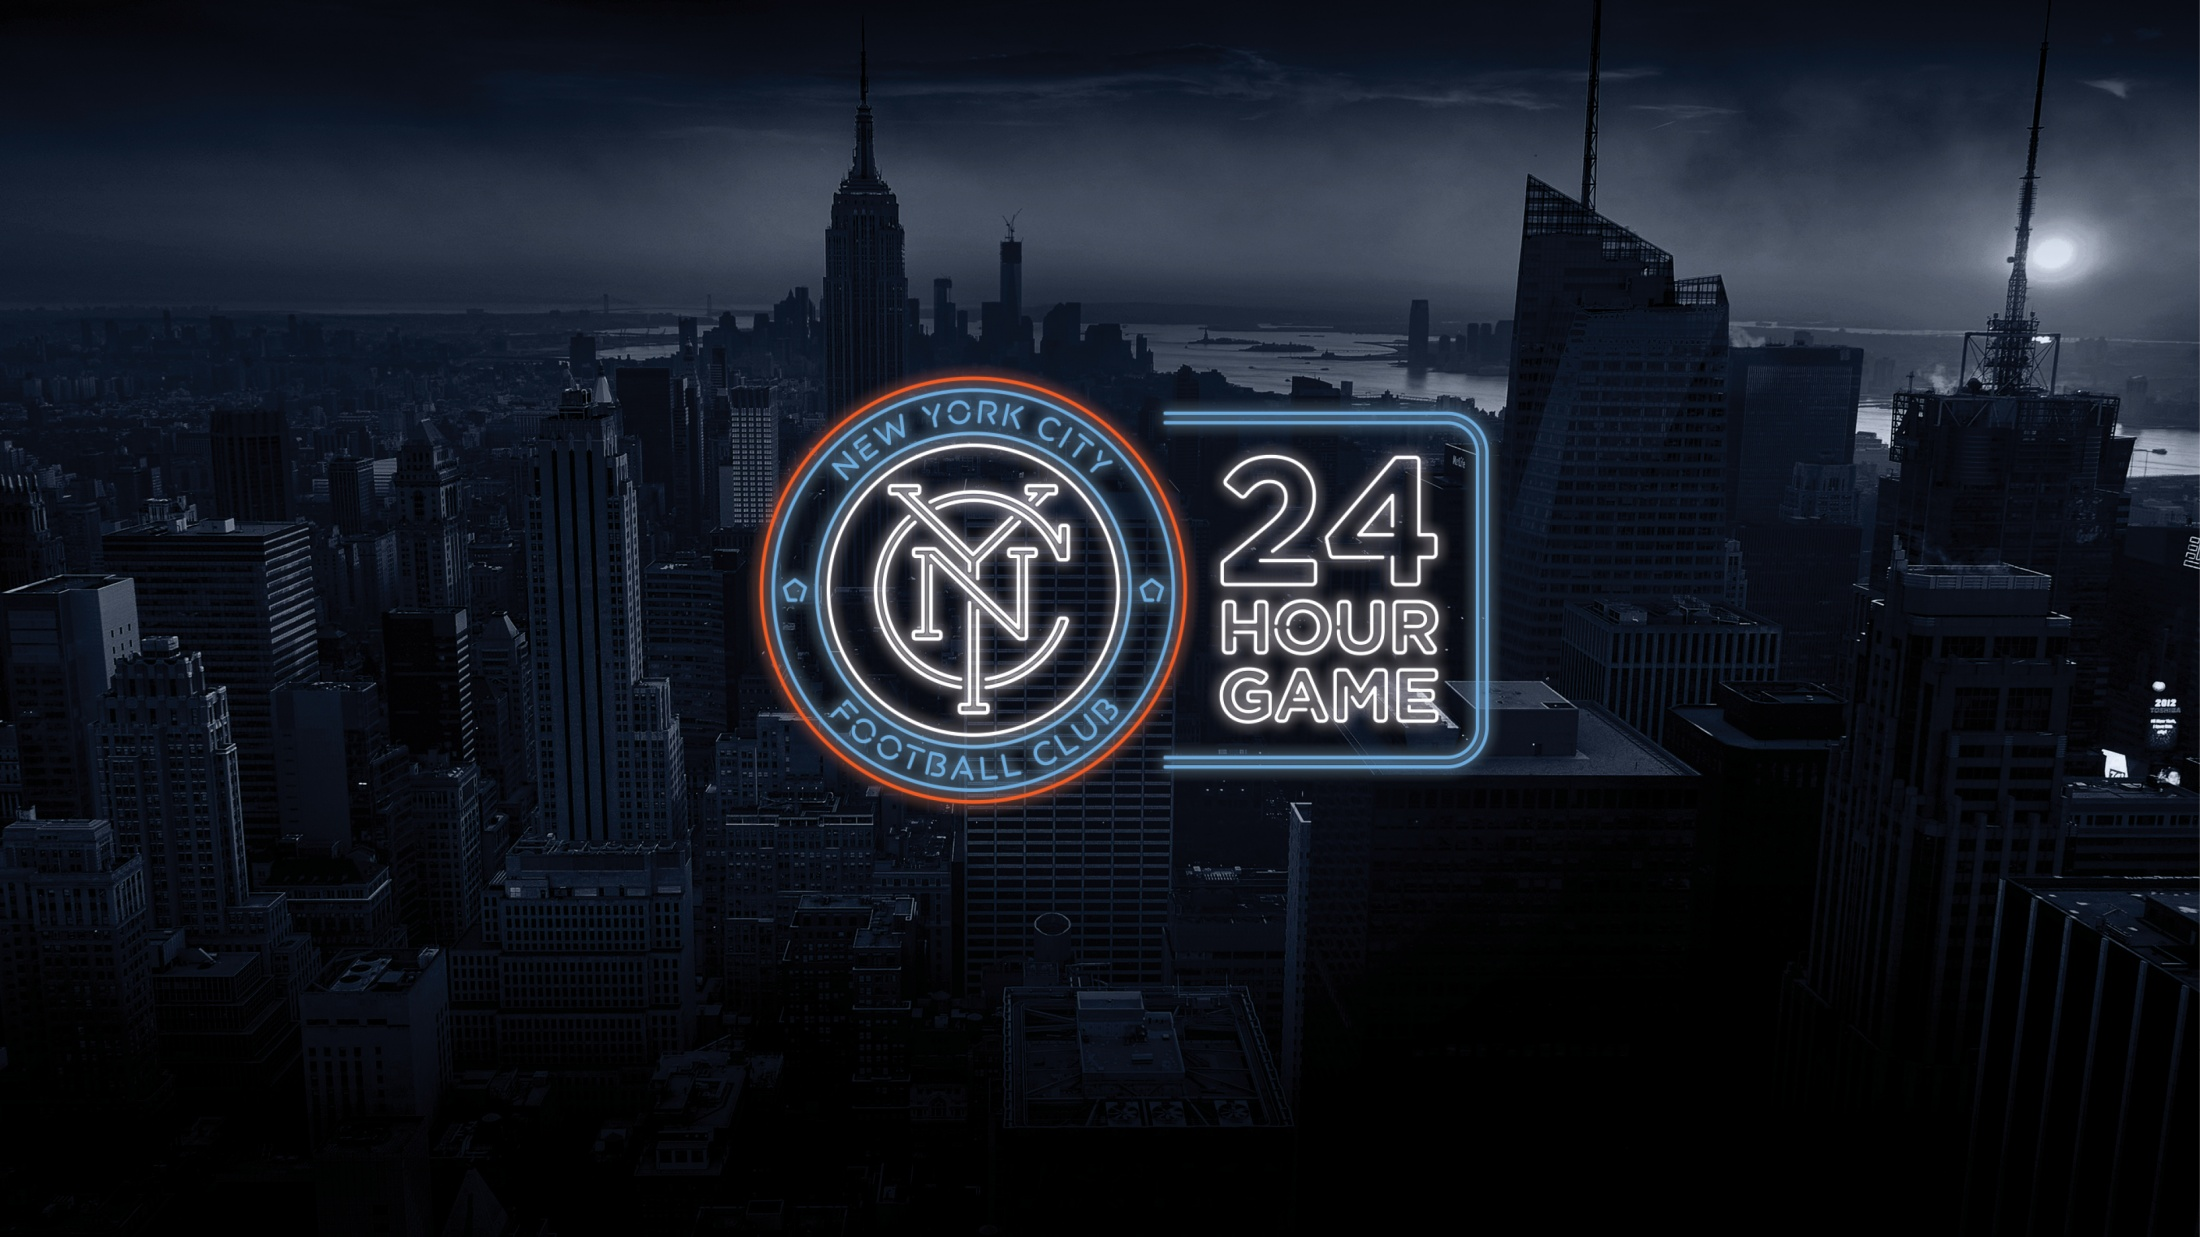 Thumbnail for NYCFC 24 Hour Game